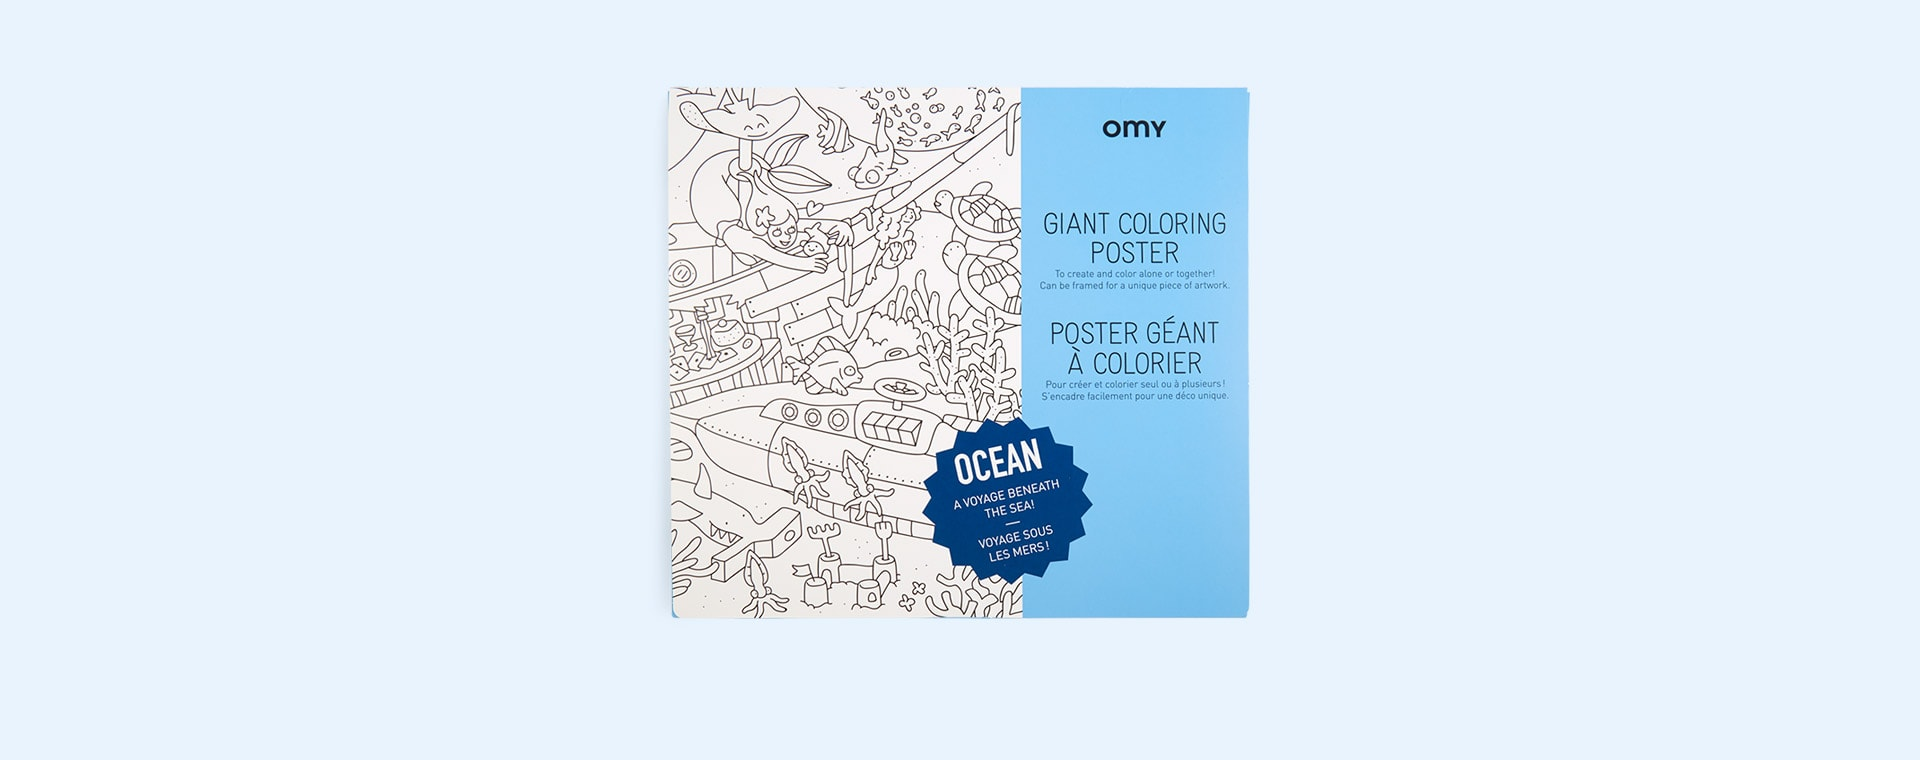 Ocean OMY DESIGN & PLAY Colouring Poster